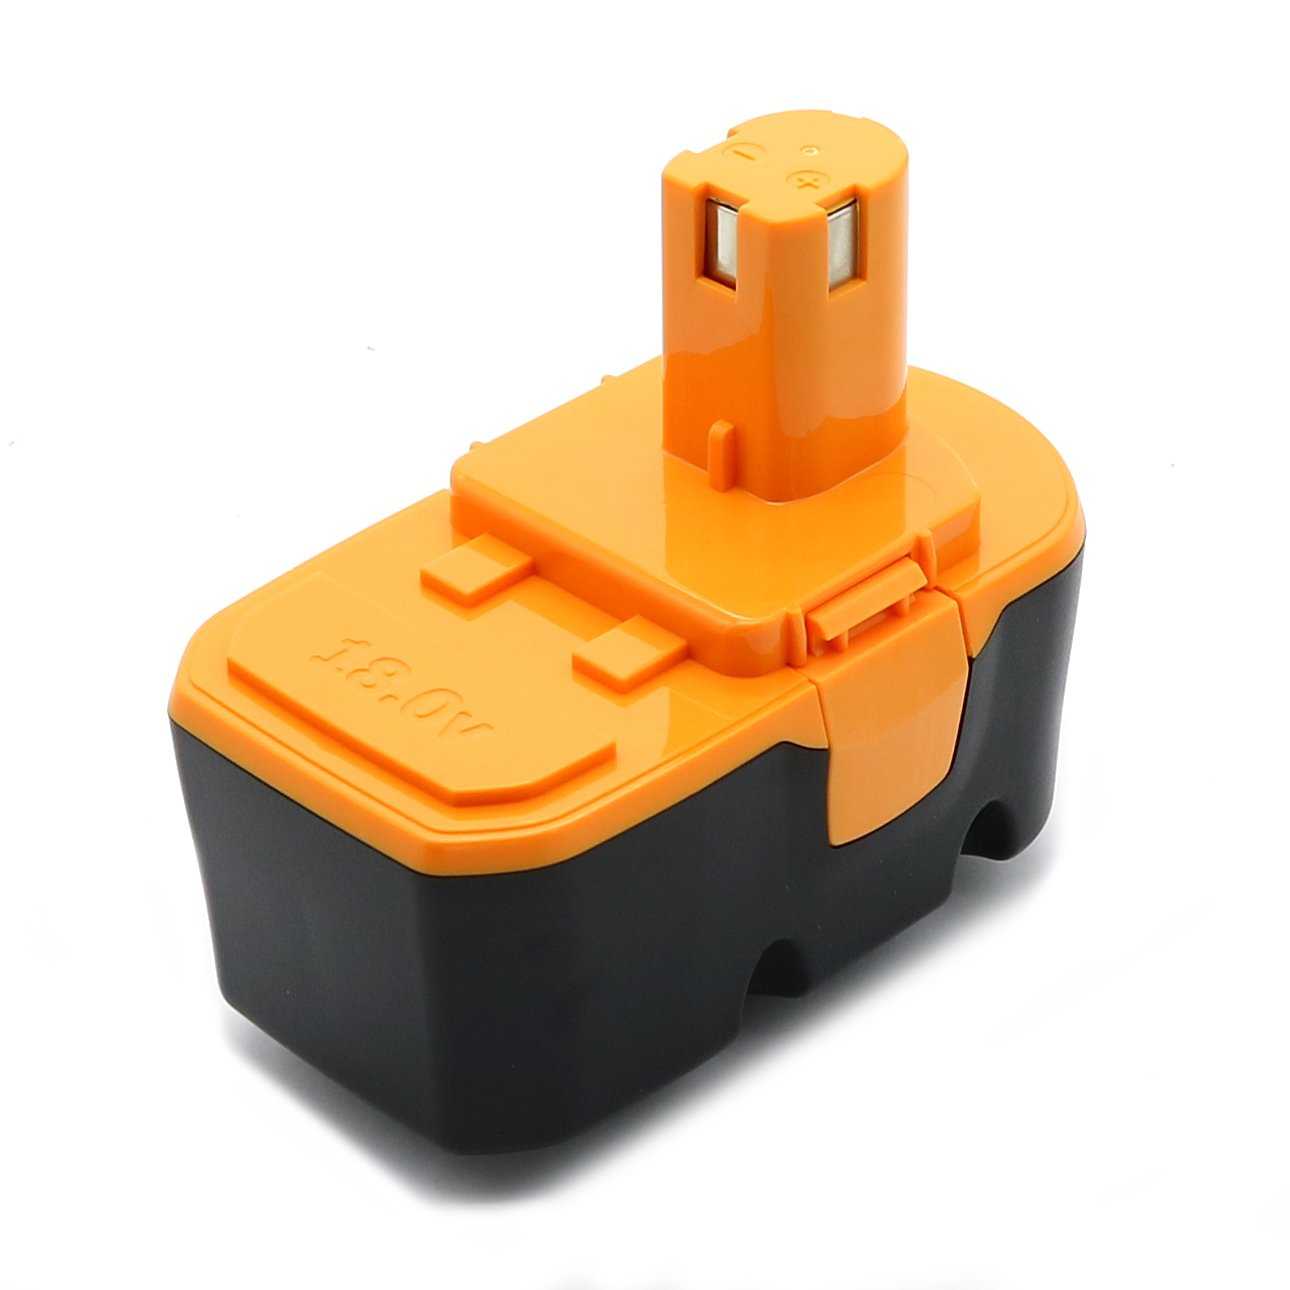 Power-Ing 18V 3.0Ah Replacement Battery for Ryobi One Plus P100 P101 ONE+ 1322401 13022 130255004 130224028 130224007 1323303 BPP-1815 BPP-1817 18 volt Cordless Power Tools Battery Pack